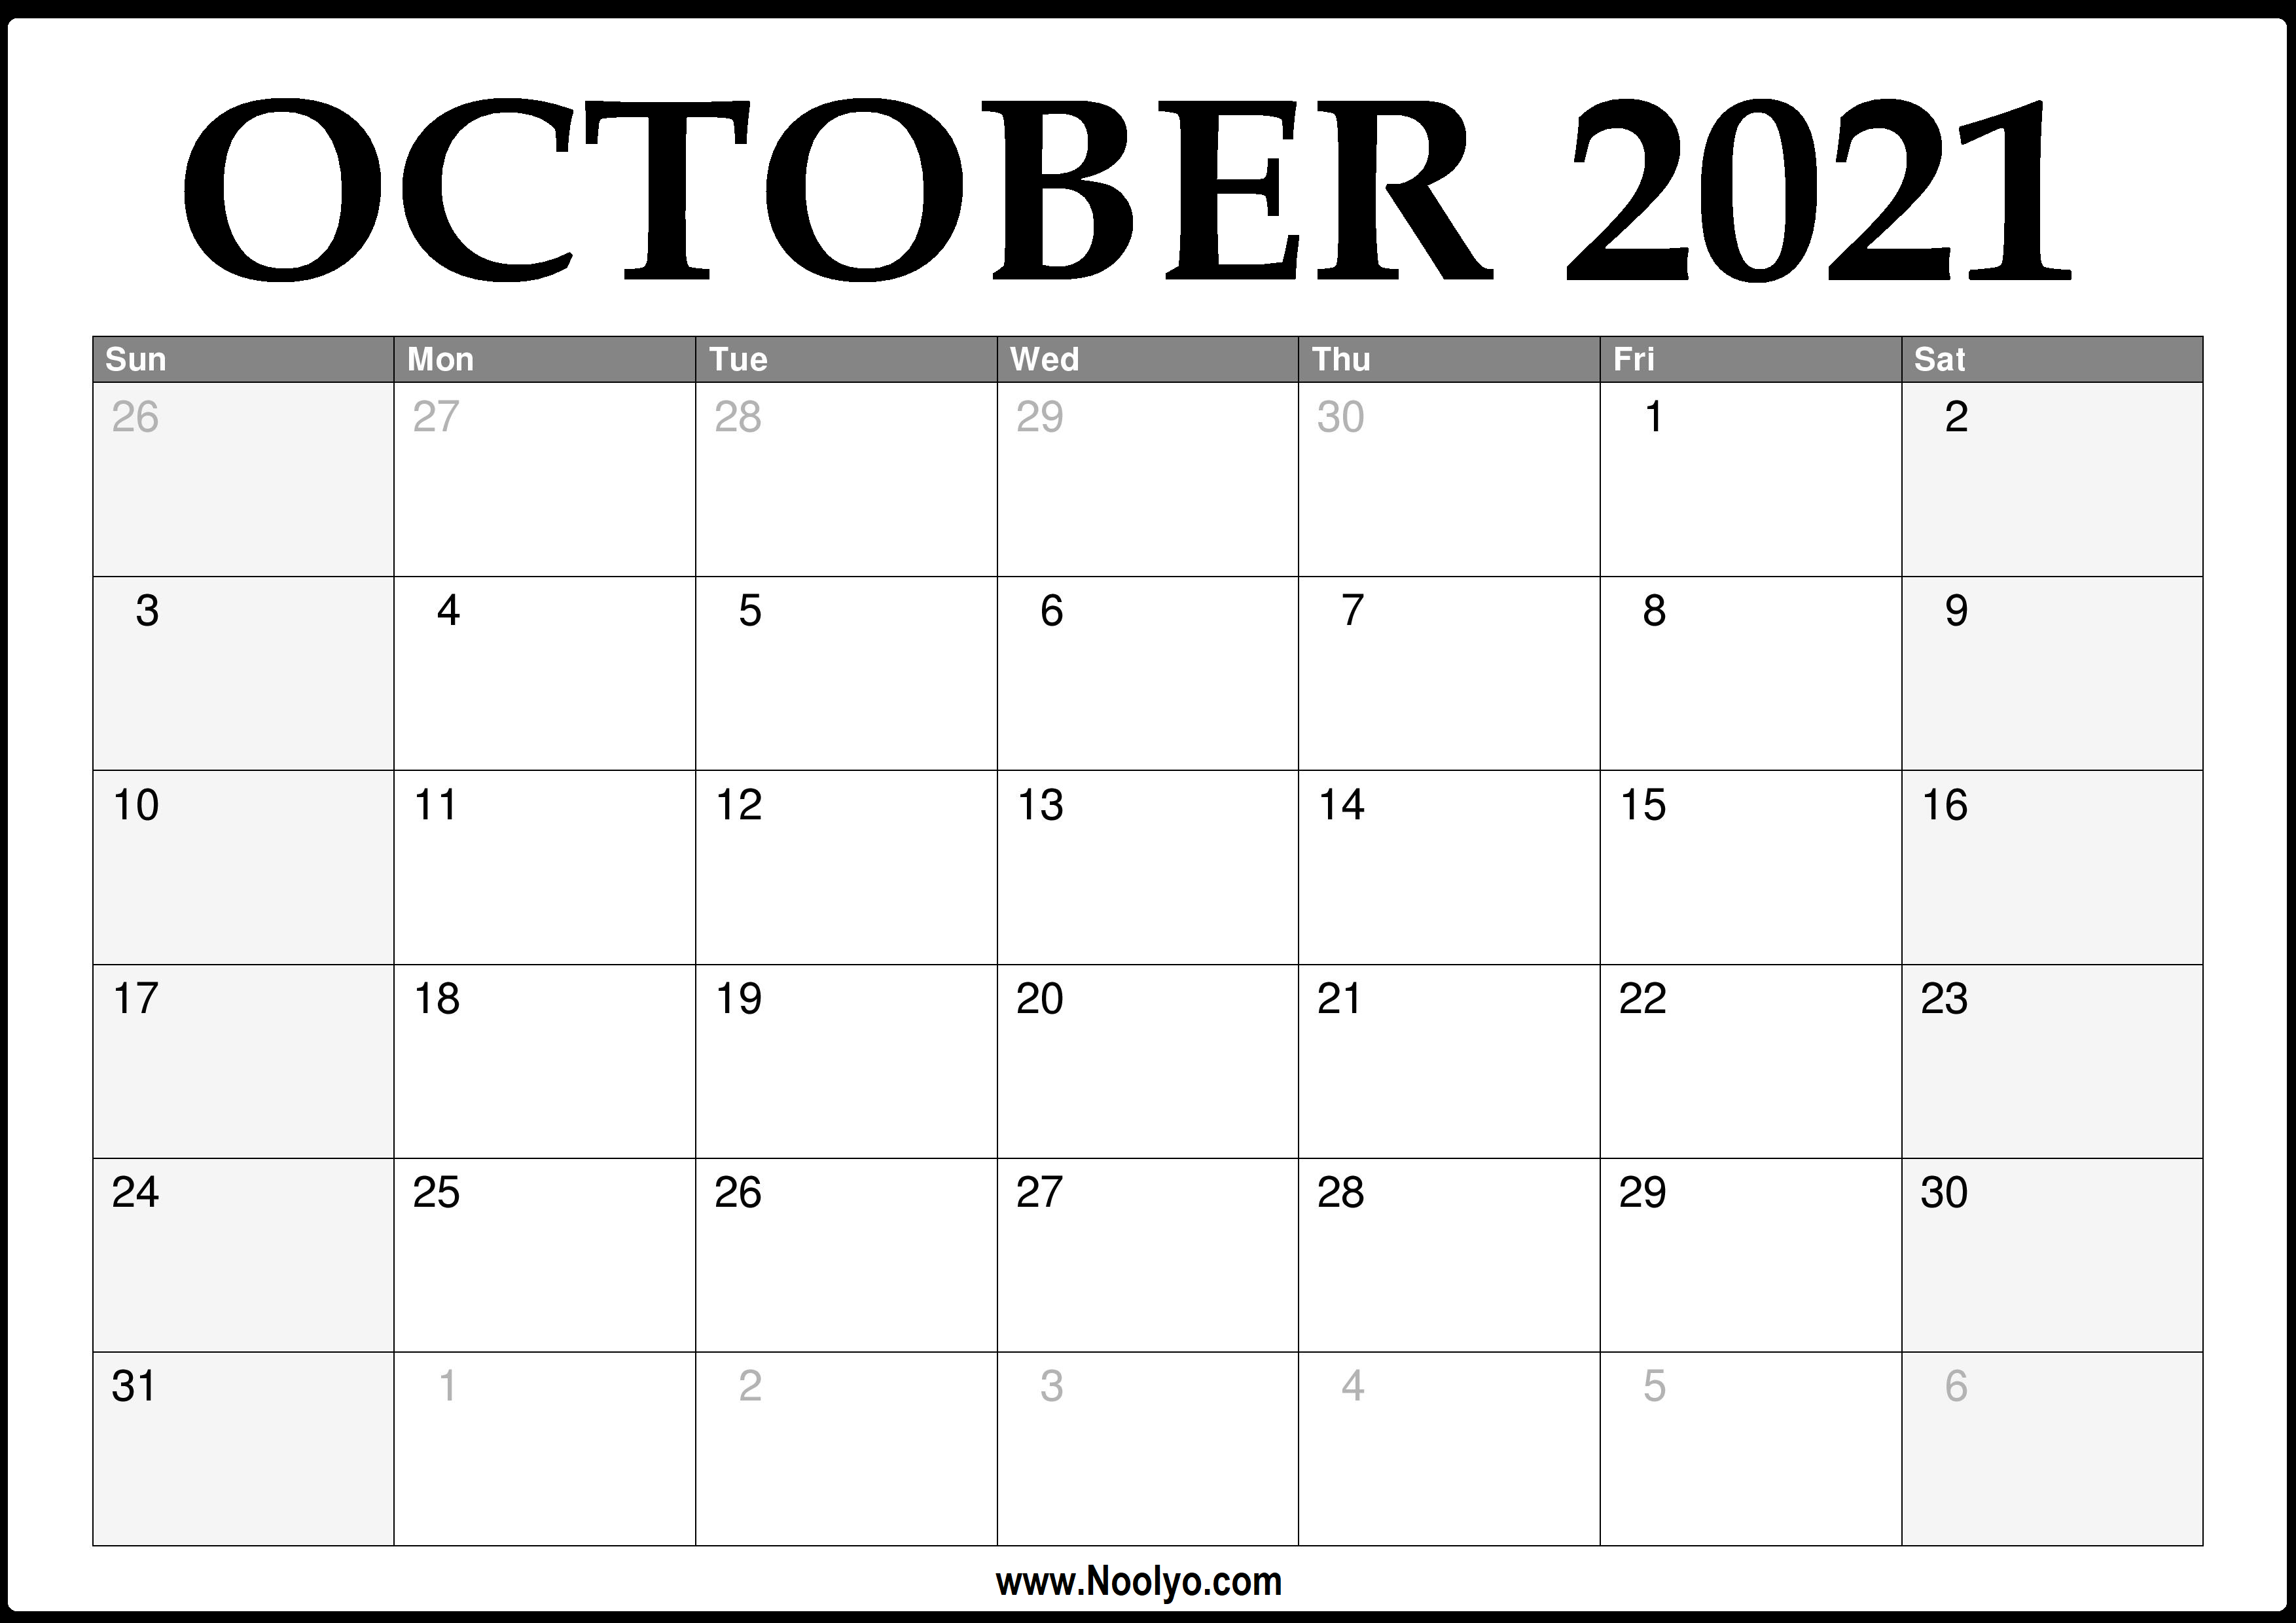 October 2021 Desktop Calendar 2021 October Calendar Printable – Download Free – Noolyo.com